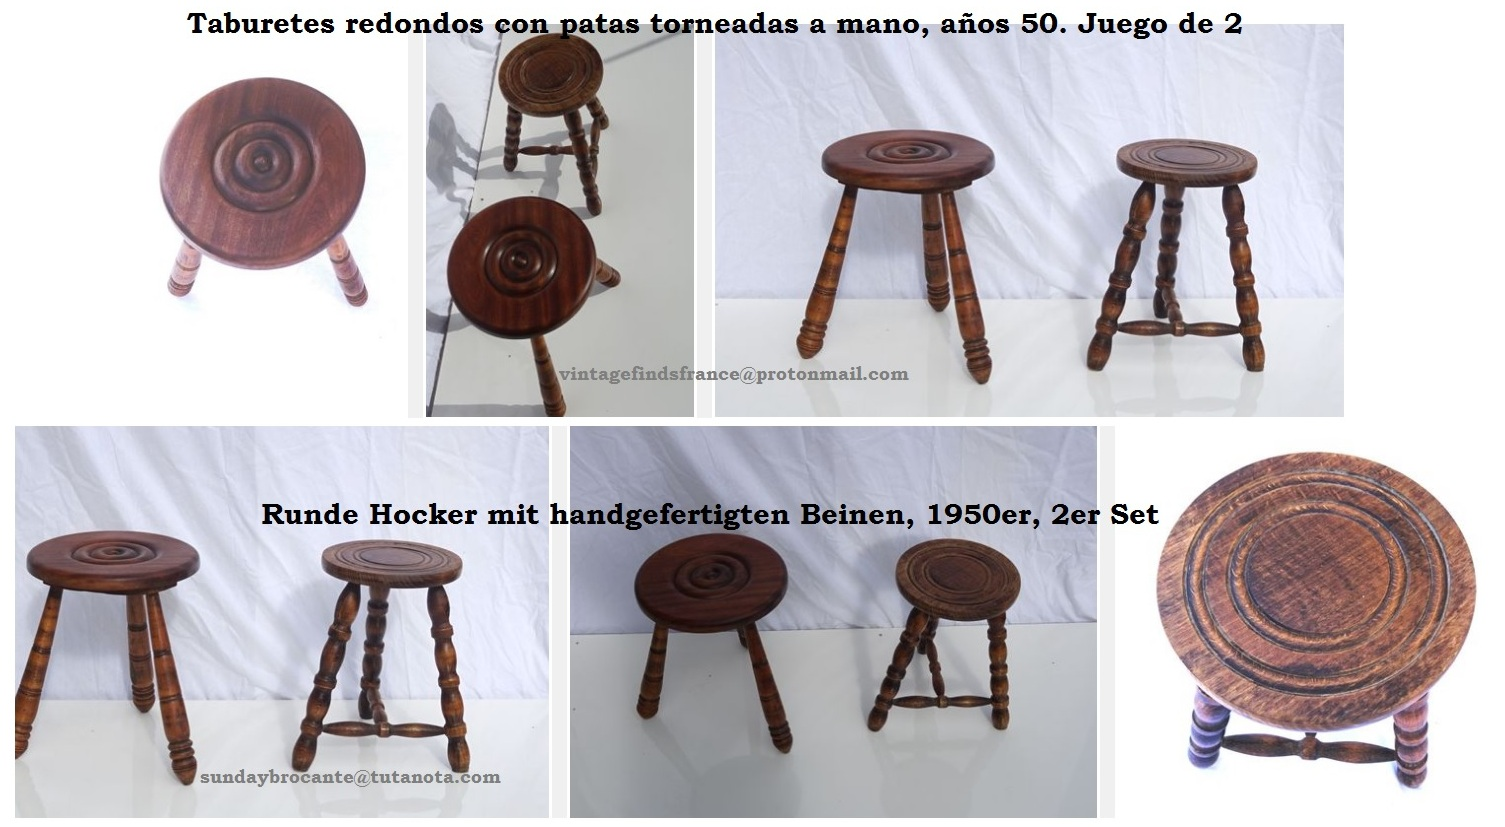 Pair of small mid-century oak/chestnut stools standing on three hand-turned legs, Runde Hocker mit handgefertigten Beinen, 1950er, 2er Set, Taburetes redondos con patas torneadas a mano, años 50. Juego de 2.